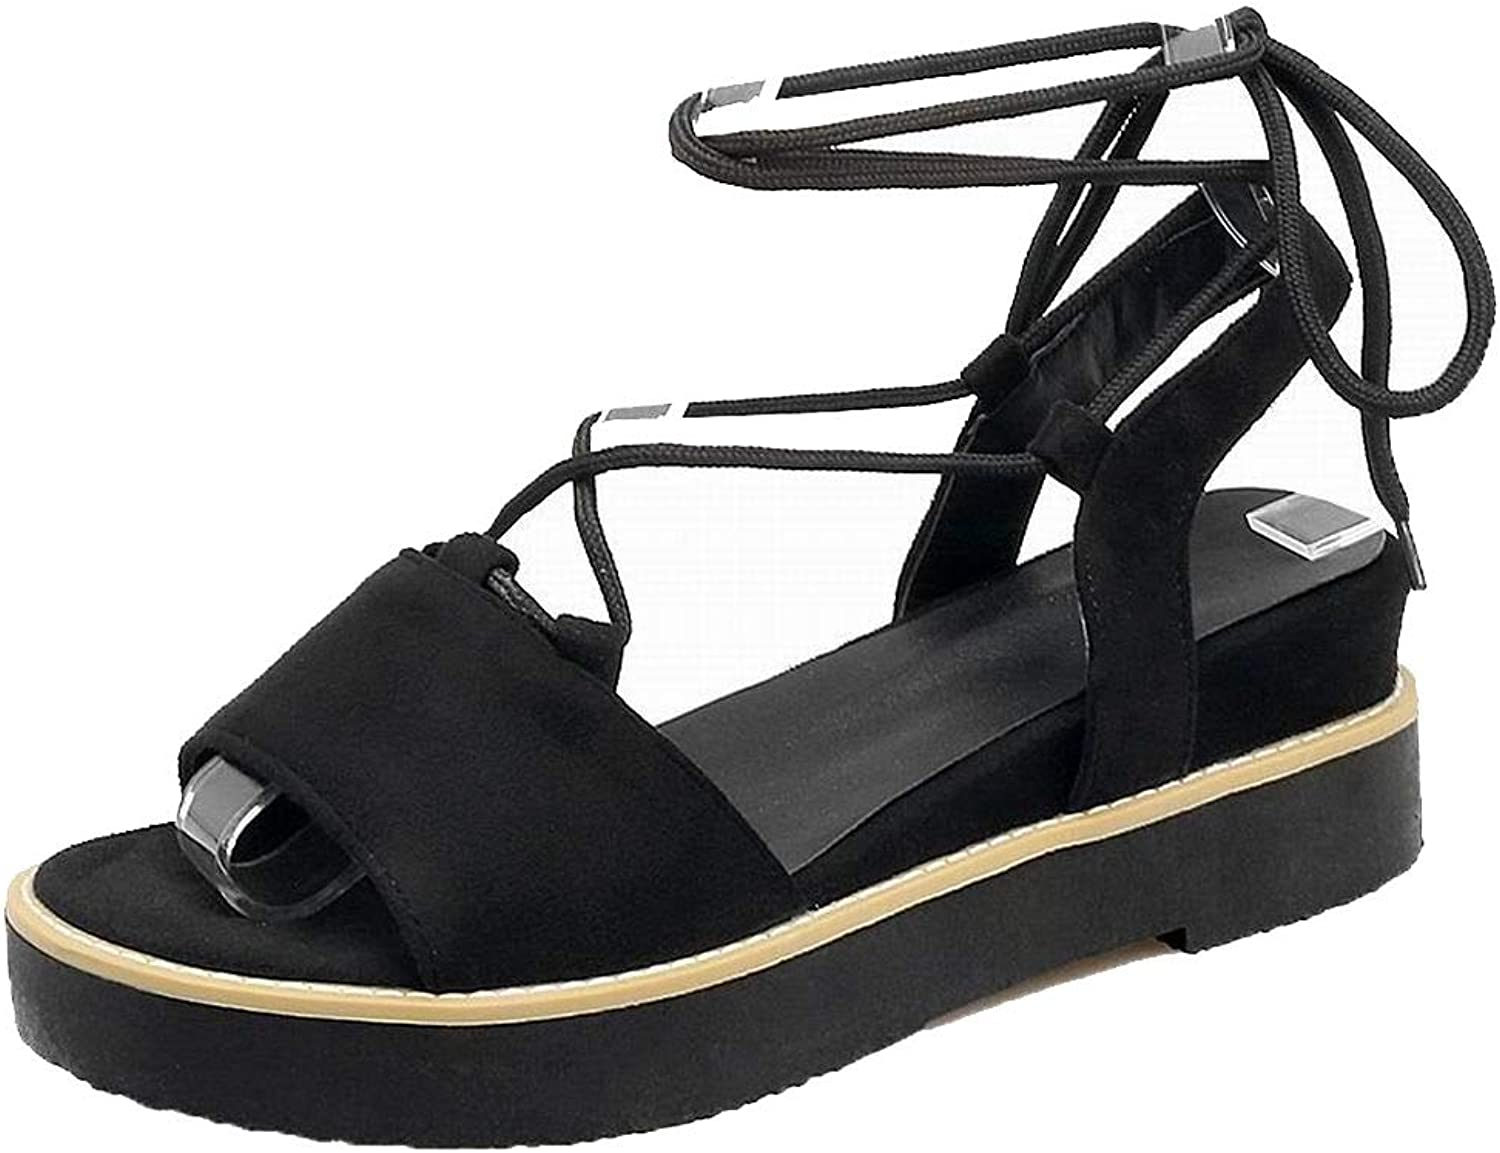 WeiPoot Women's Solid Frosted Low-Heels Lace-Up Open-Toe Sandals, EGHLH007864